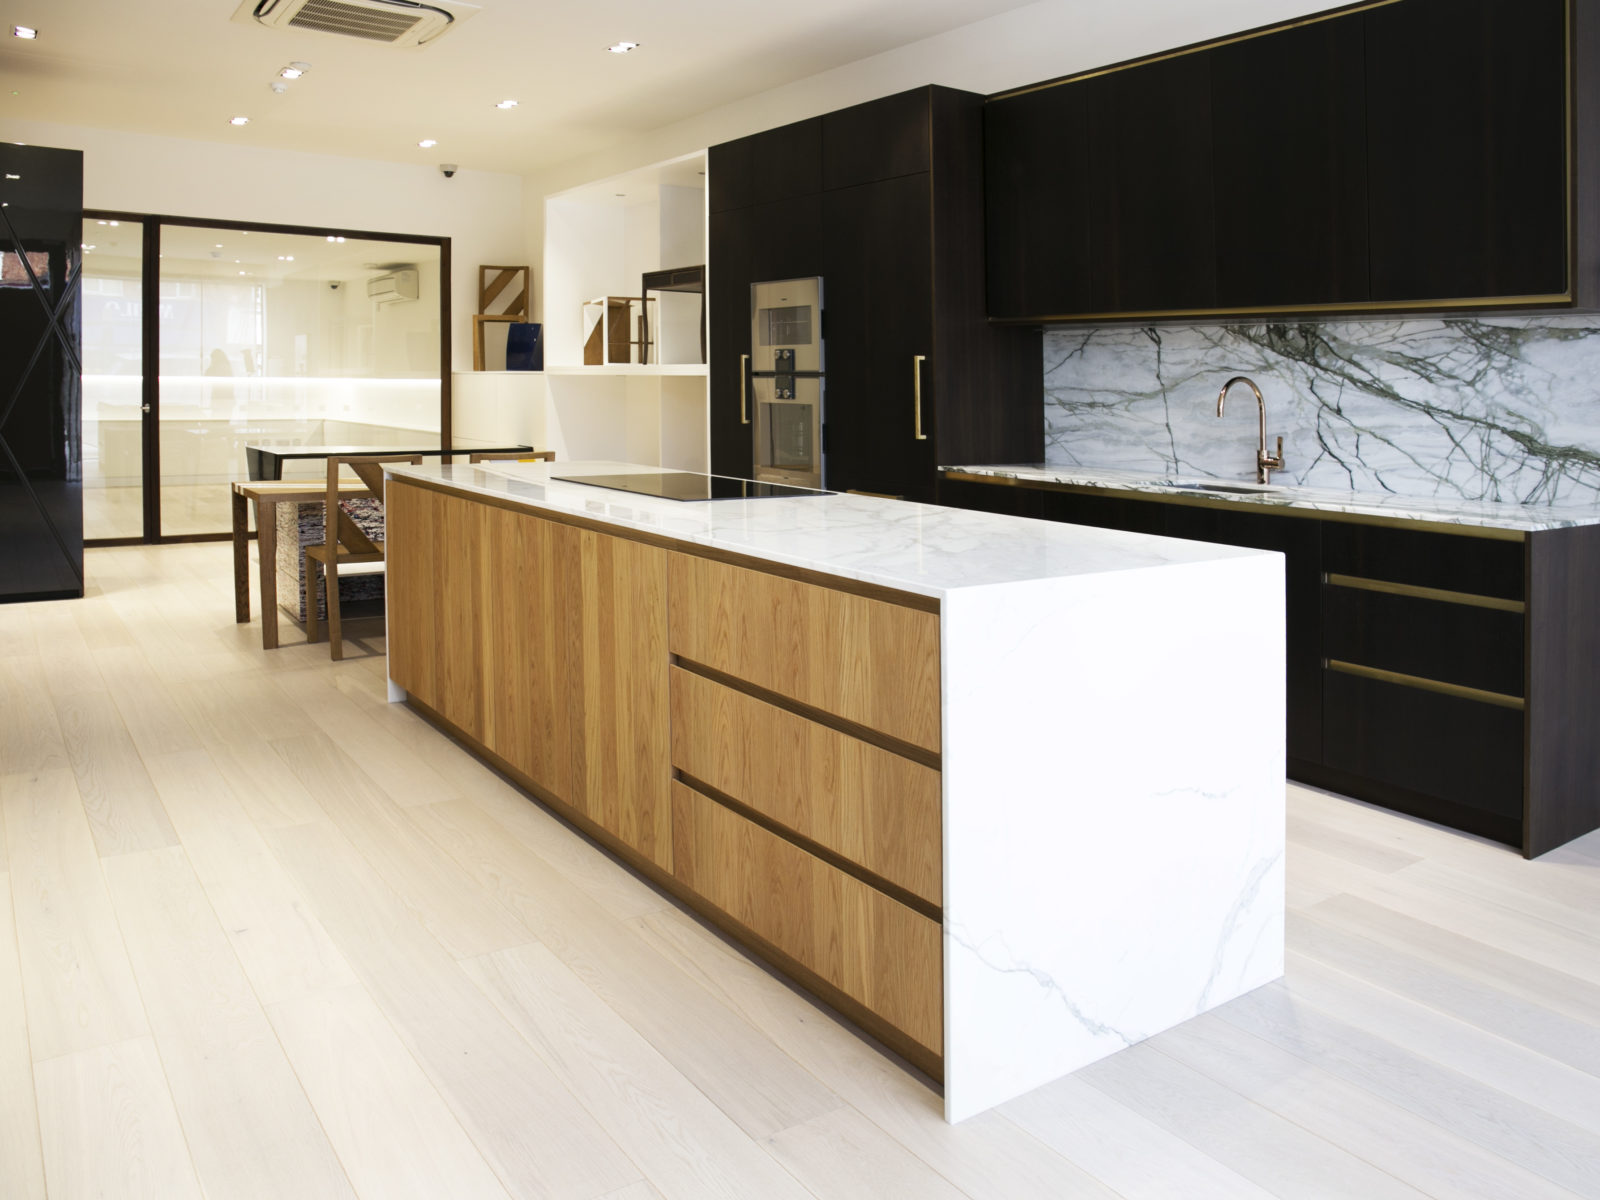 St James Interiors showroom kitchen